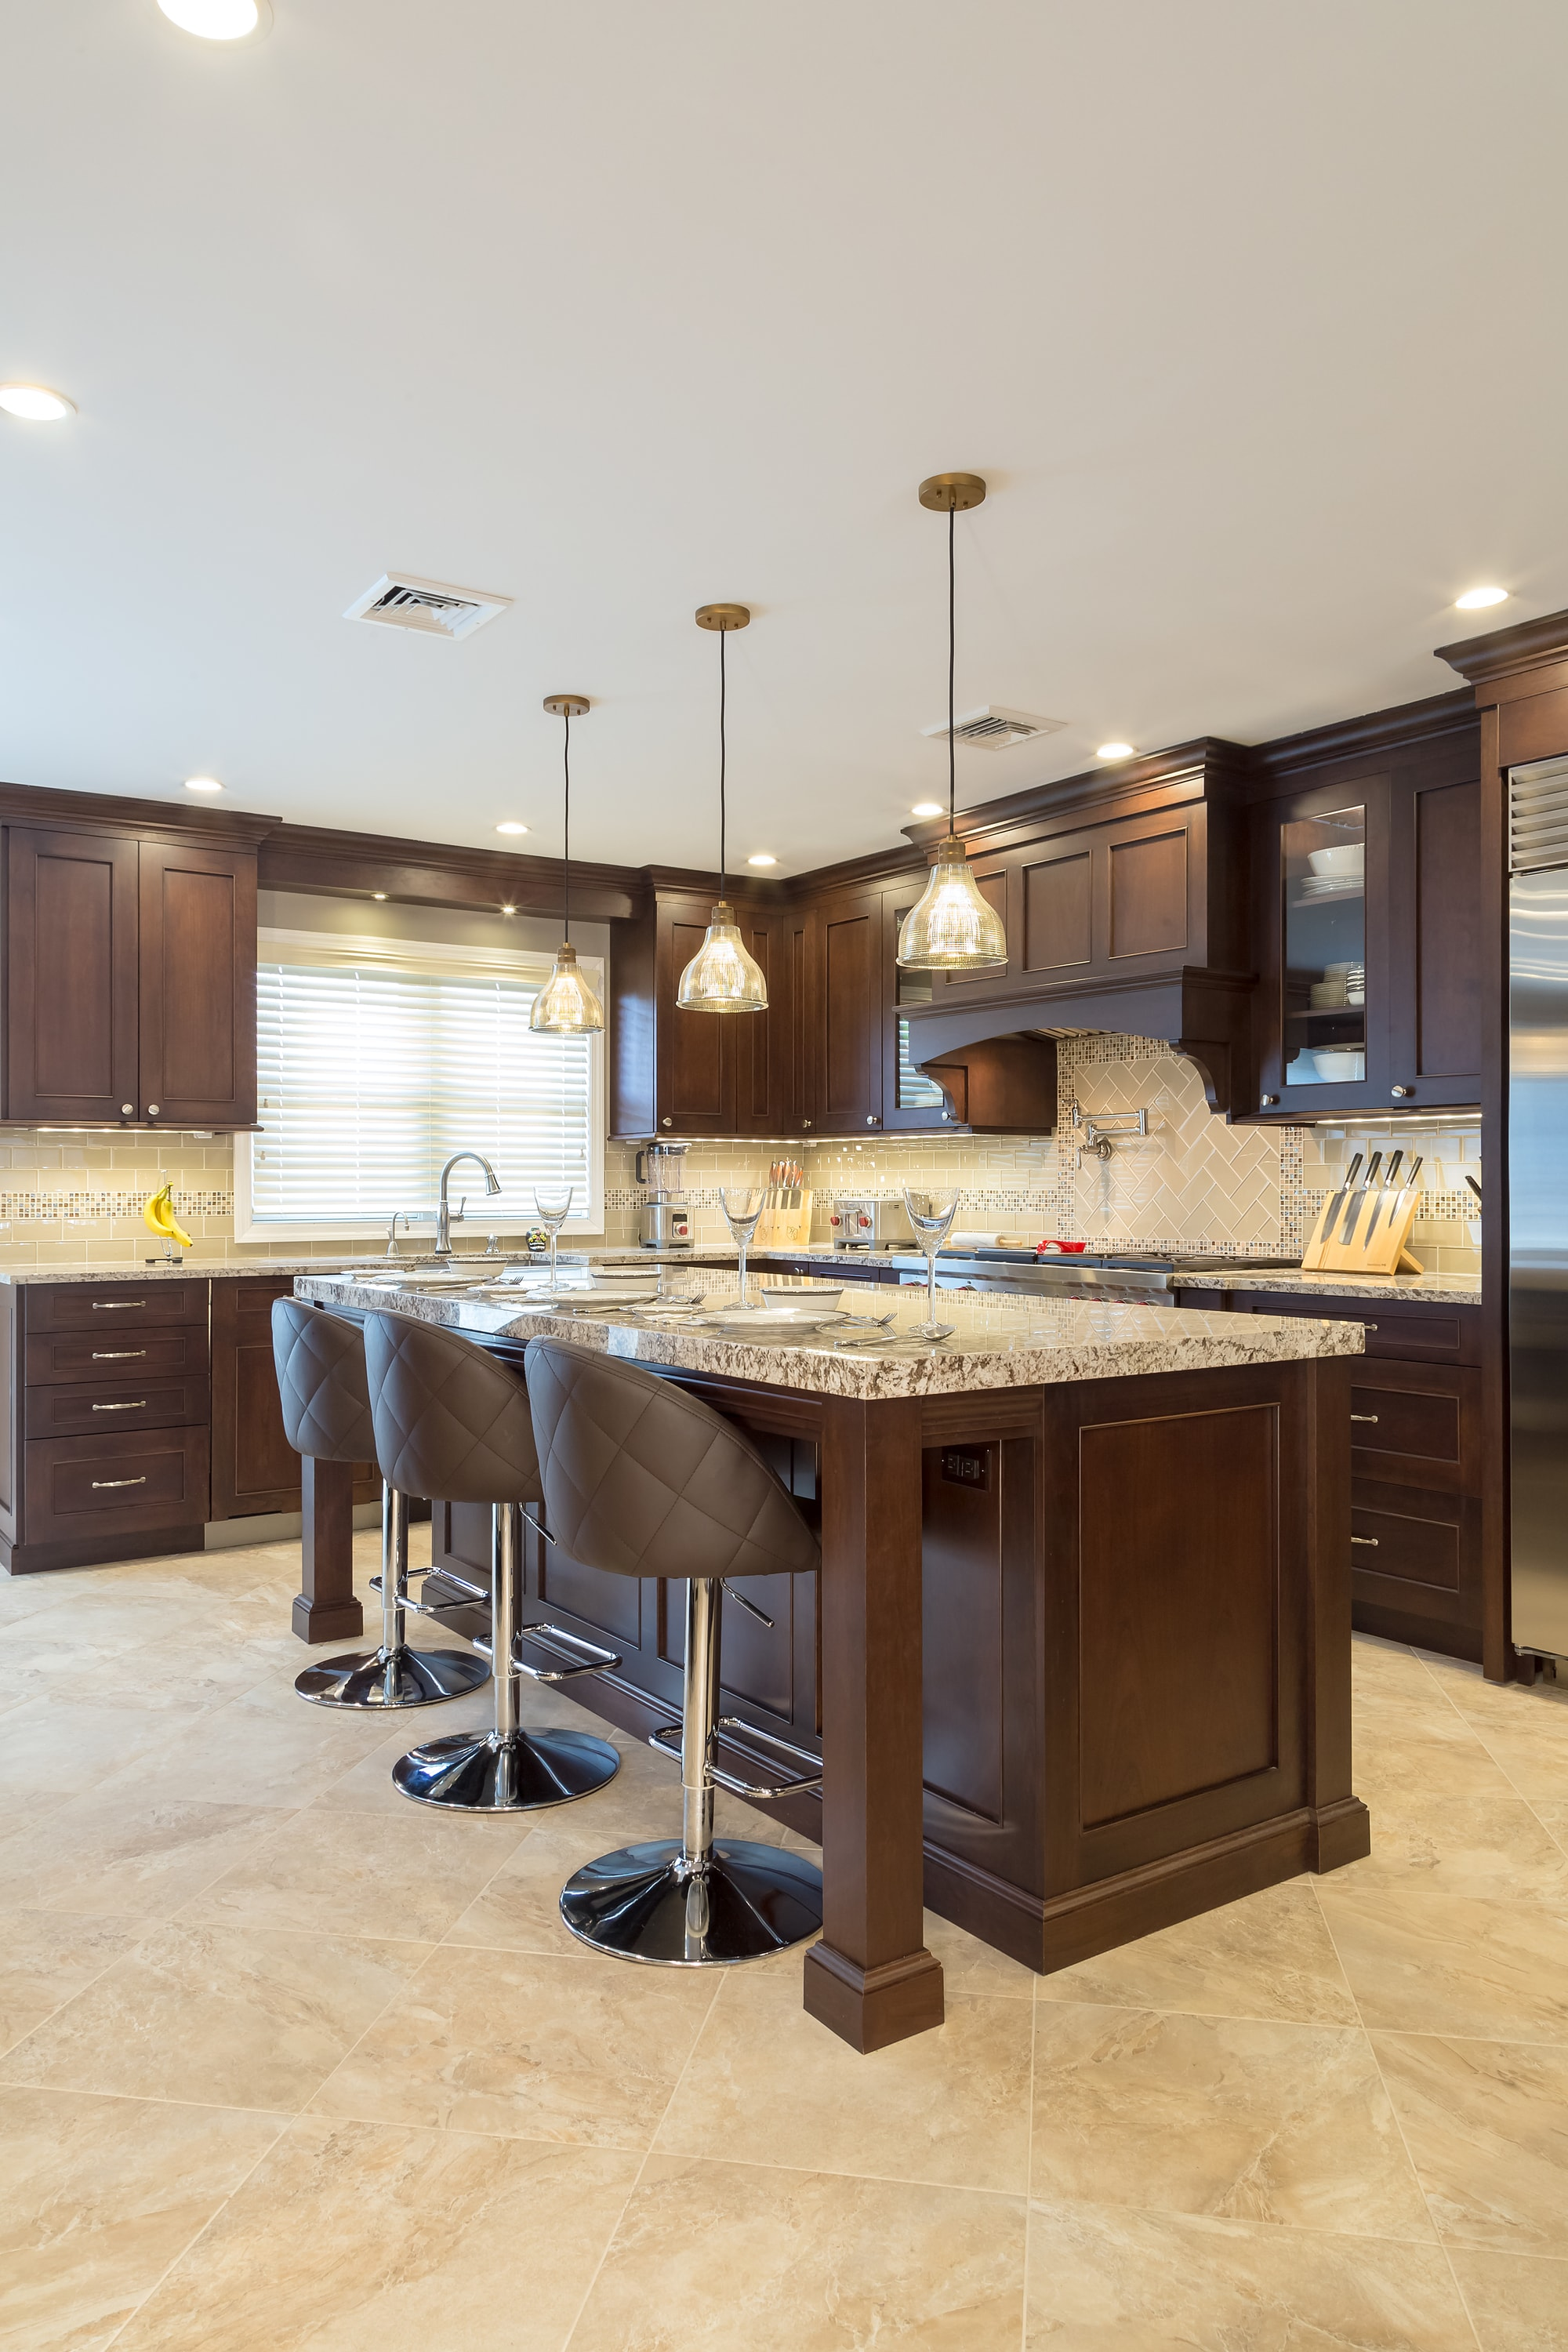 Traditional style kitchen with white marble floor